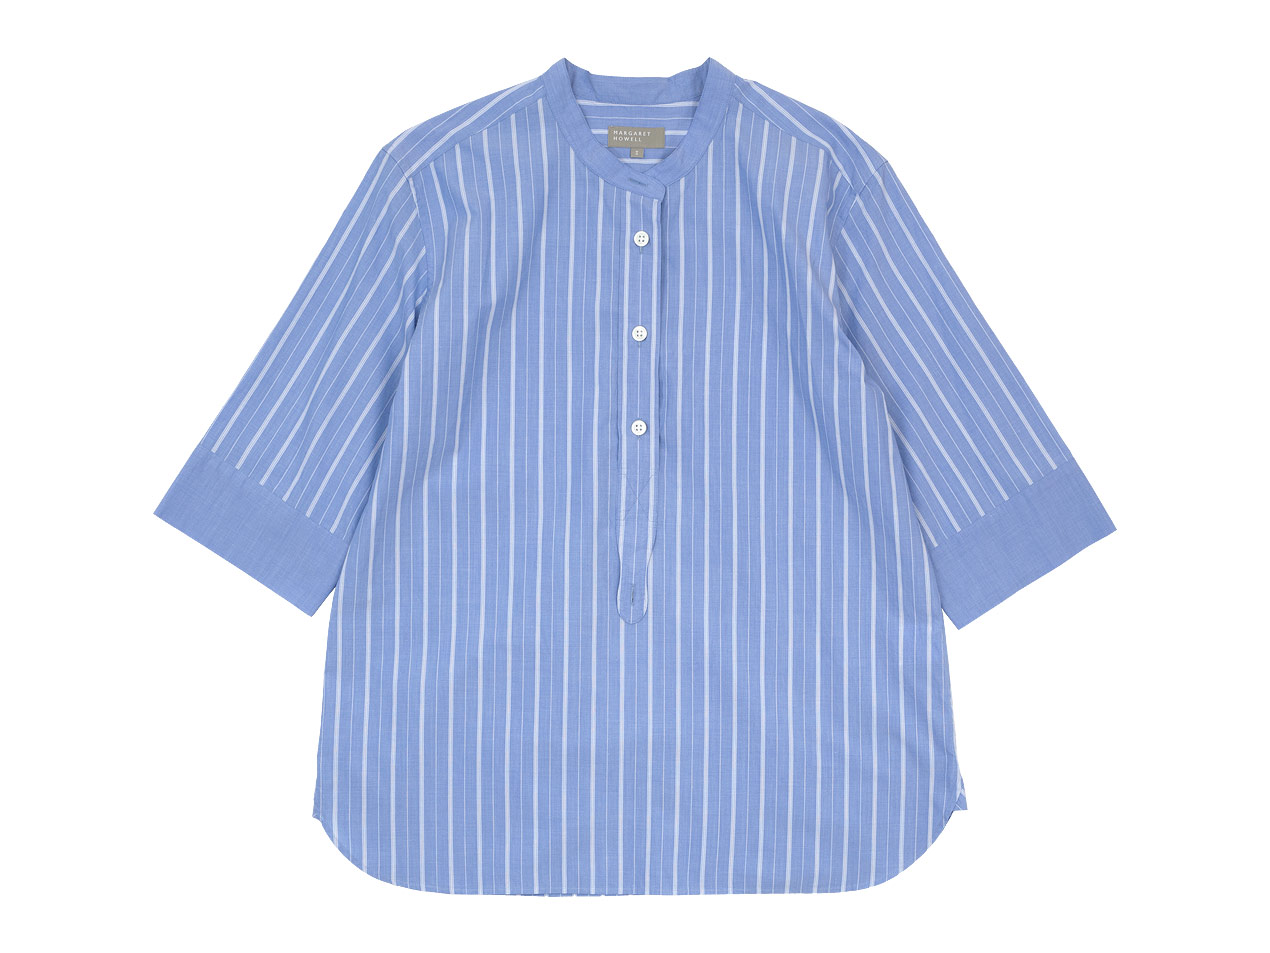 MARGARET HOWELL WIDE PJ STRIPE COTTON P/O SHIRTS 〔レディース〕 / BOLD CHECK LINEN SHIRTS 〔メンズ〕